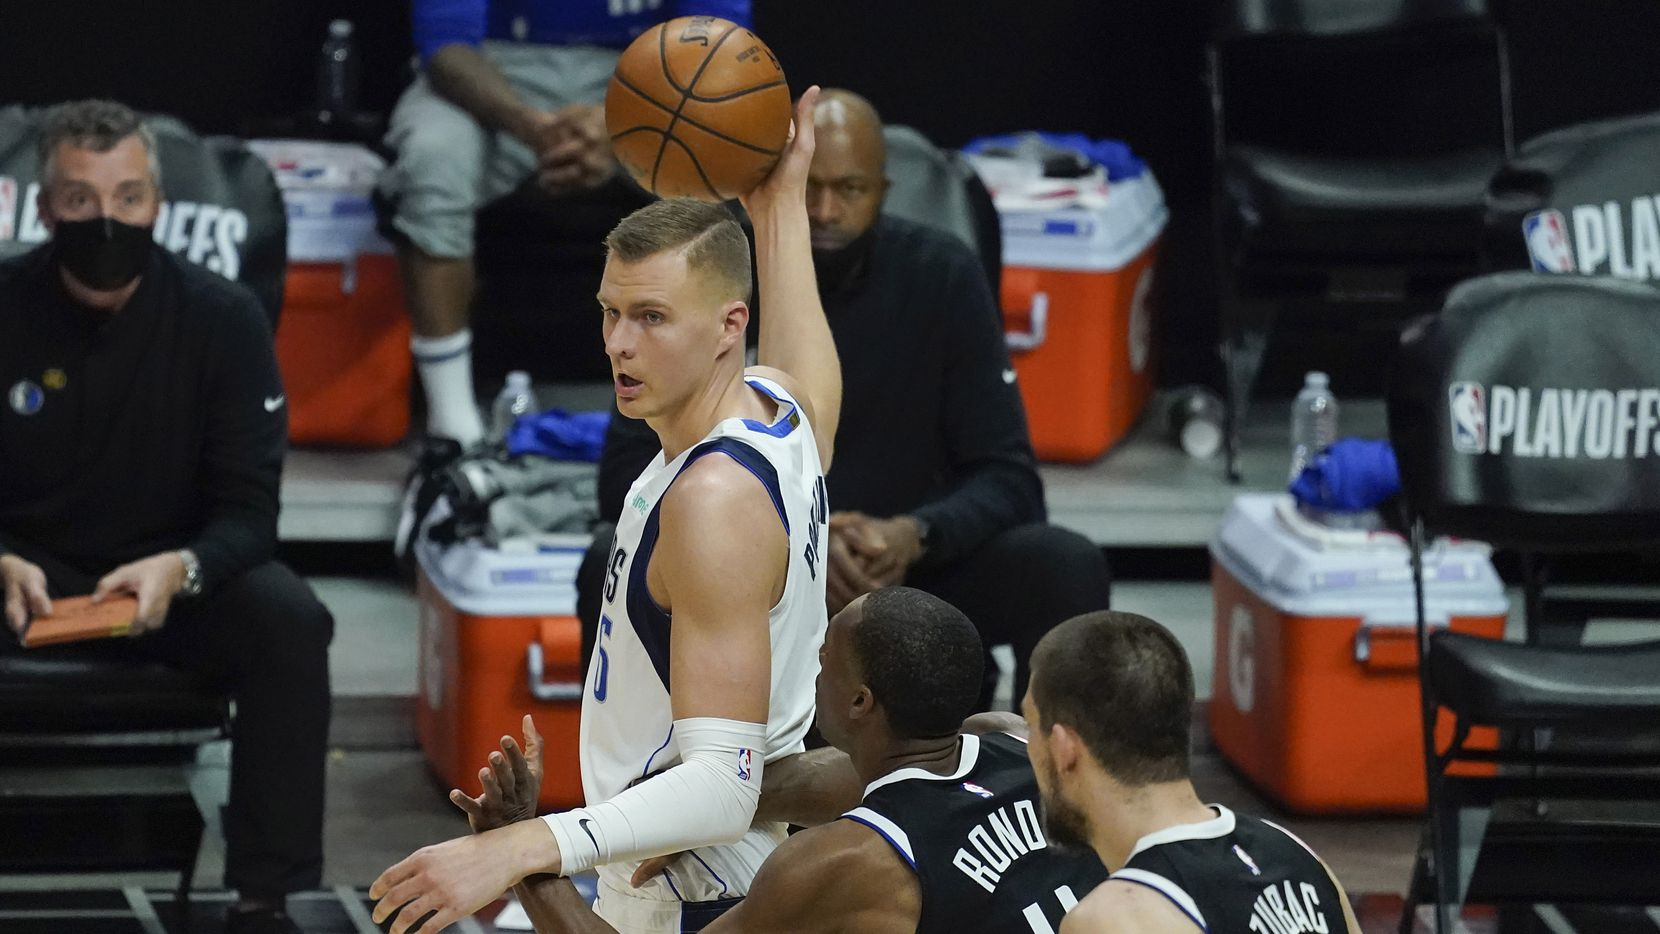 Dallas Mavericks center Kristaps Porzingis (6) works against LA Clippers guard Rajon Rondo (4) and center Ivica Zubac (40) during the first quarter of an NBA playoff basketball game at the Staples Center on Wednesday, June 2, 2021, in Los Angeles.